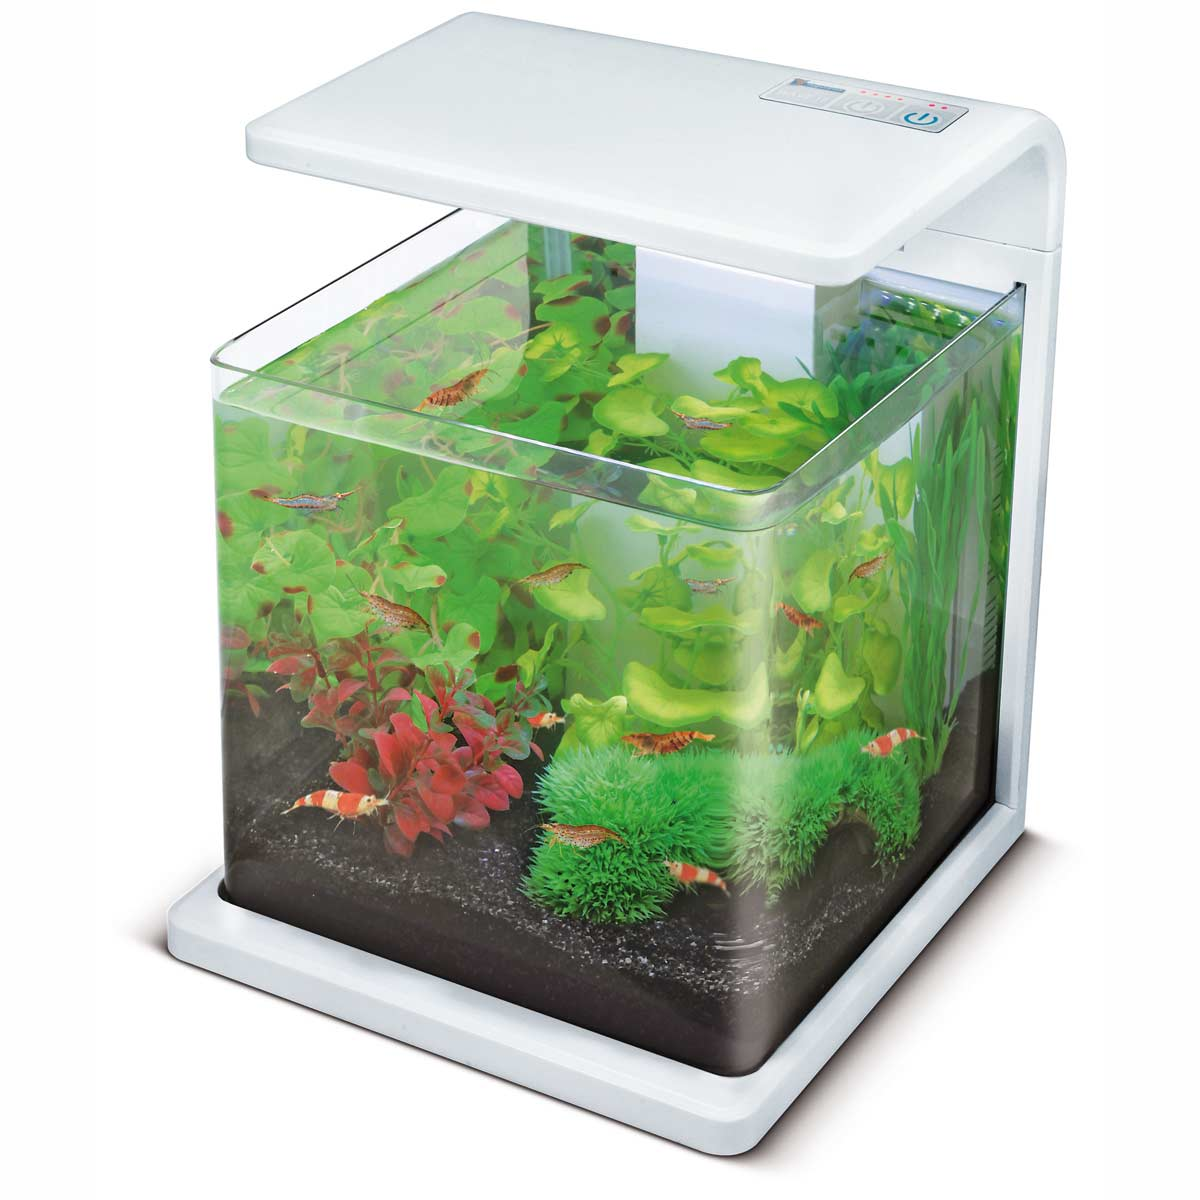 Pets :: Aquatics :: Fish Tanks & Tools :: Wave 30 Fish Tank